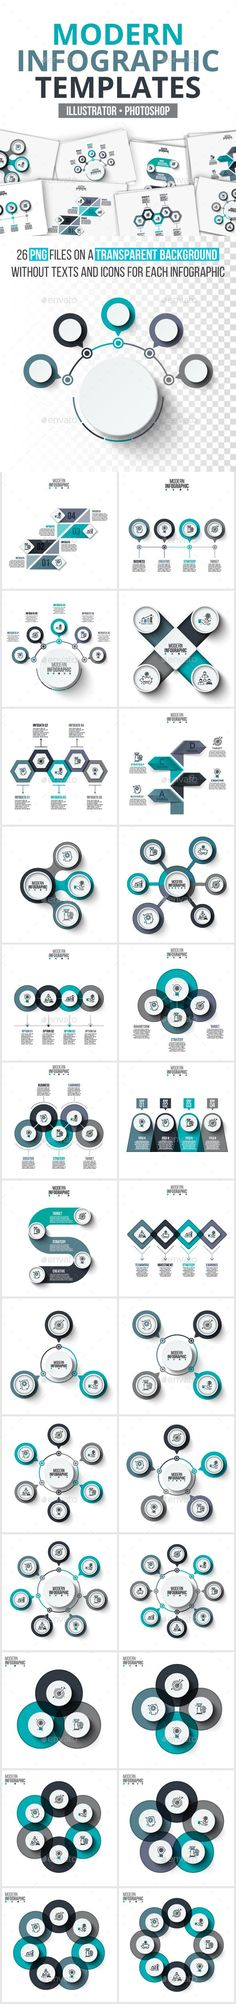 Modern infographic pack - #Infographics